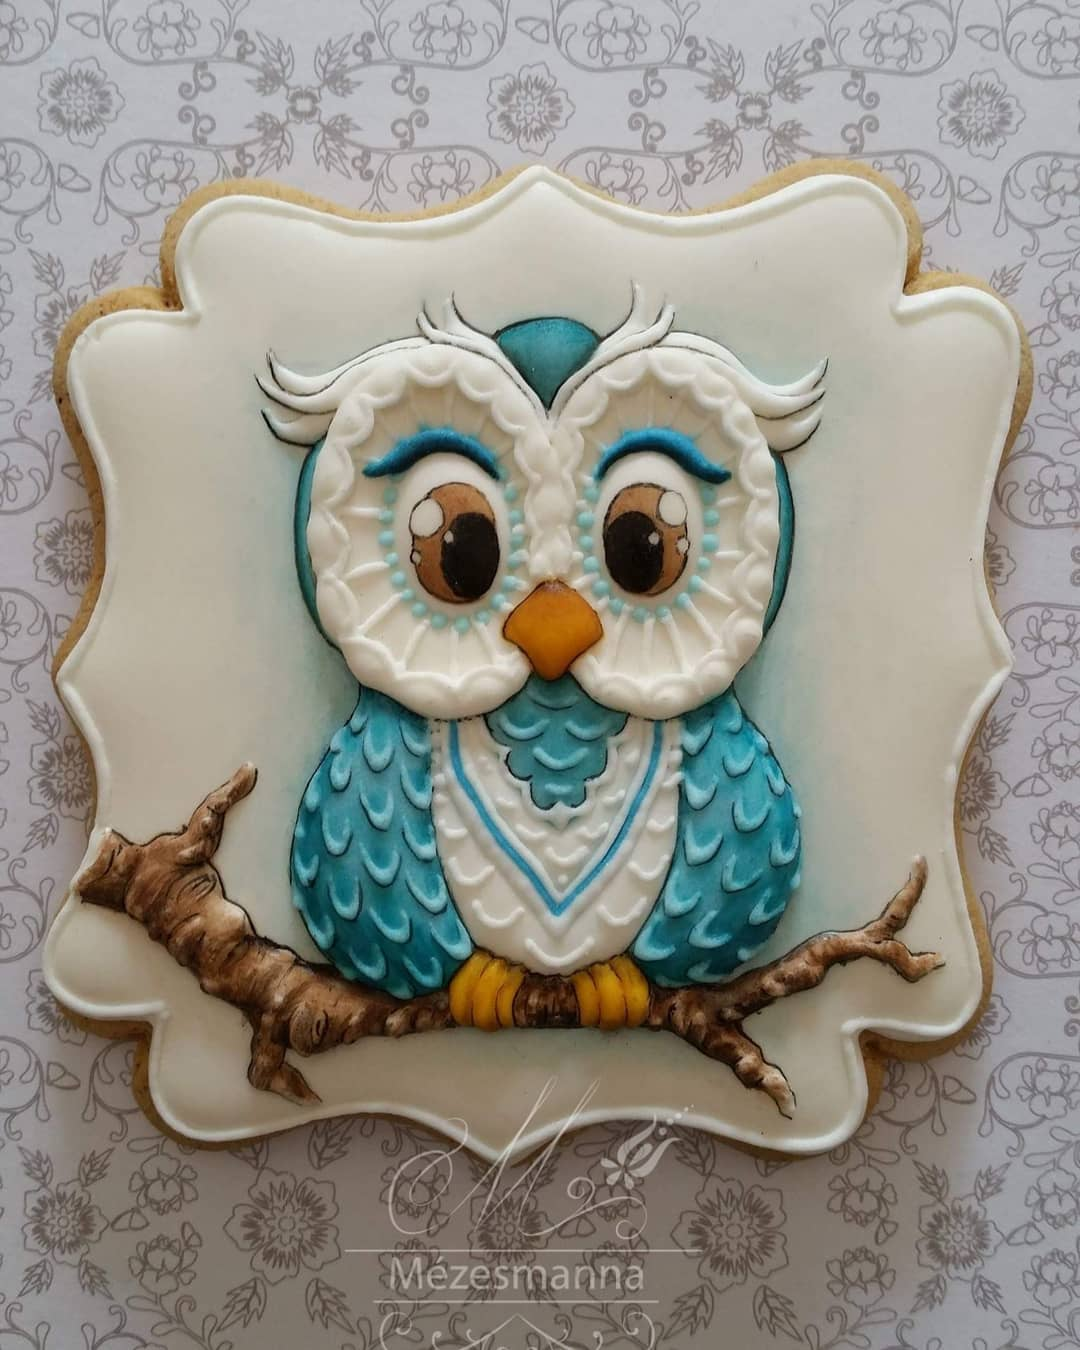 Embroidery-Inspired Cookies Of Hungarian Chef Are Fit To Be Framed, Not Eaten 2